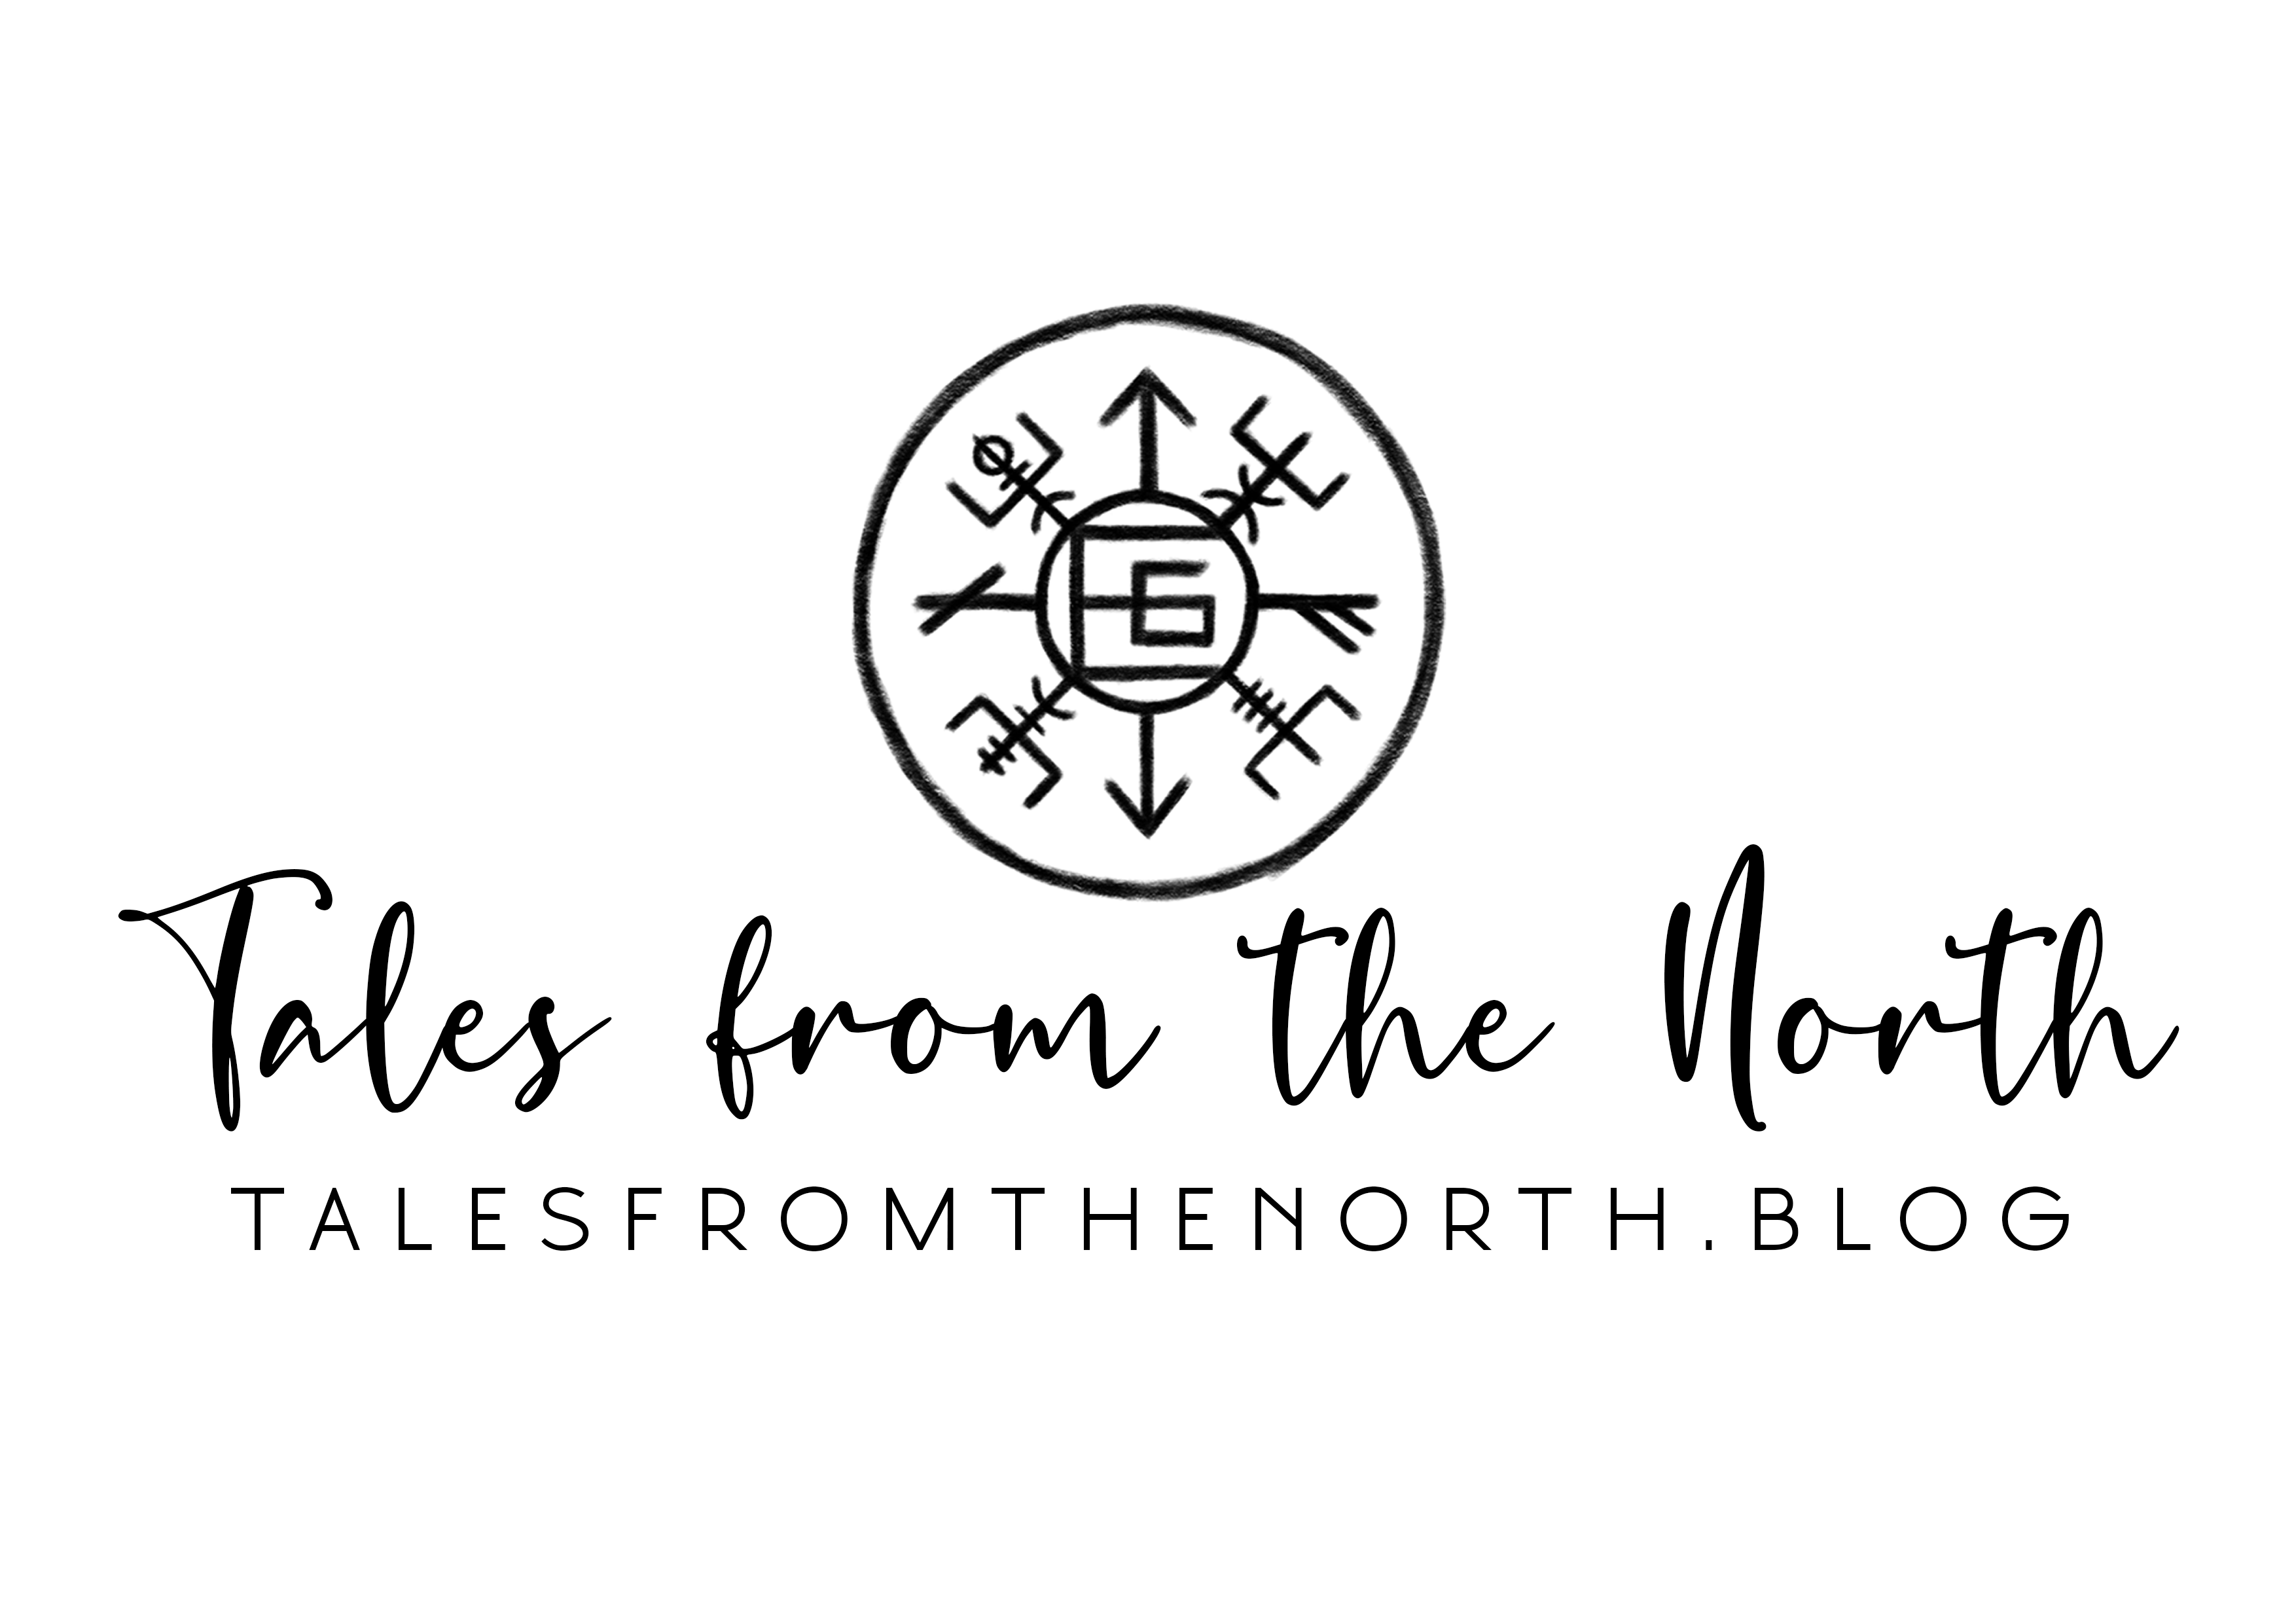 Tales from the North